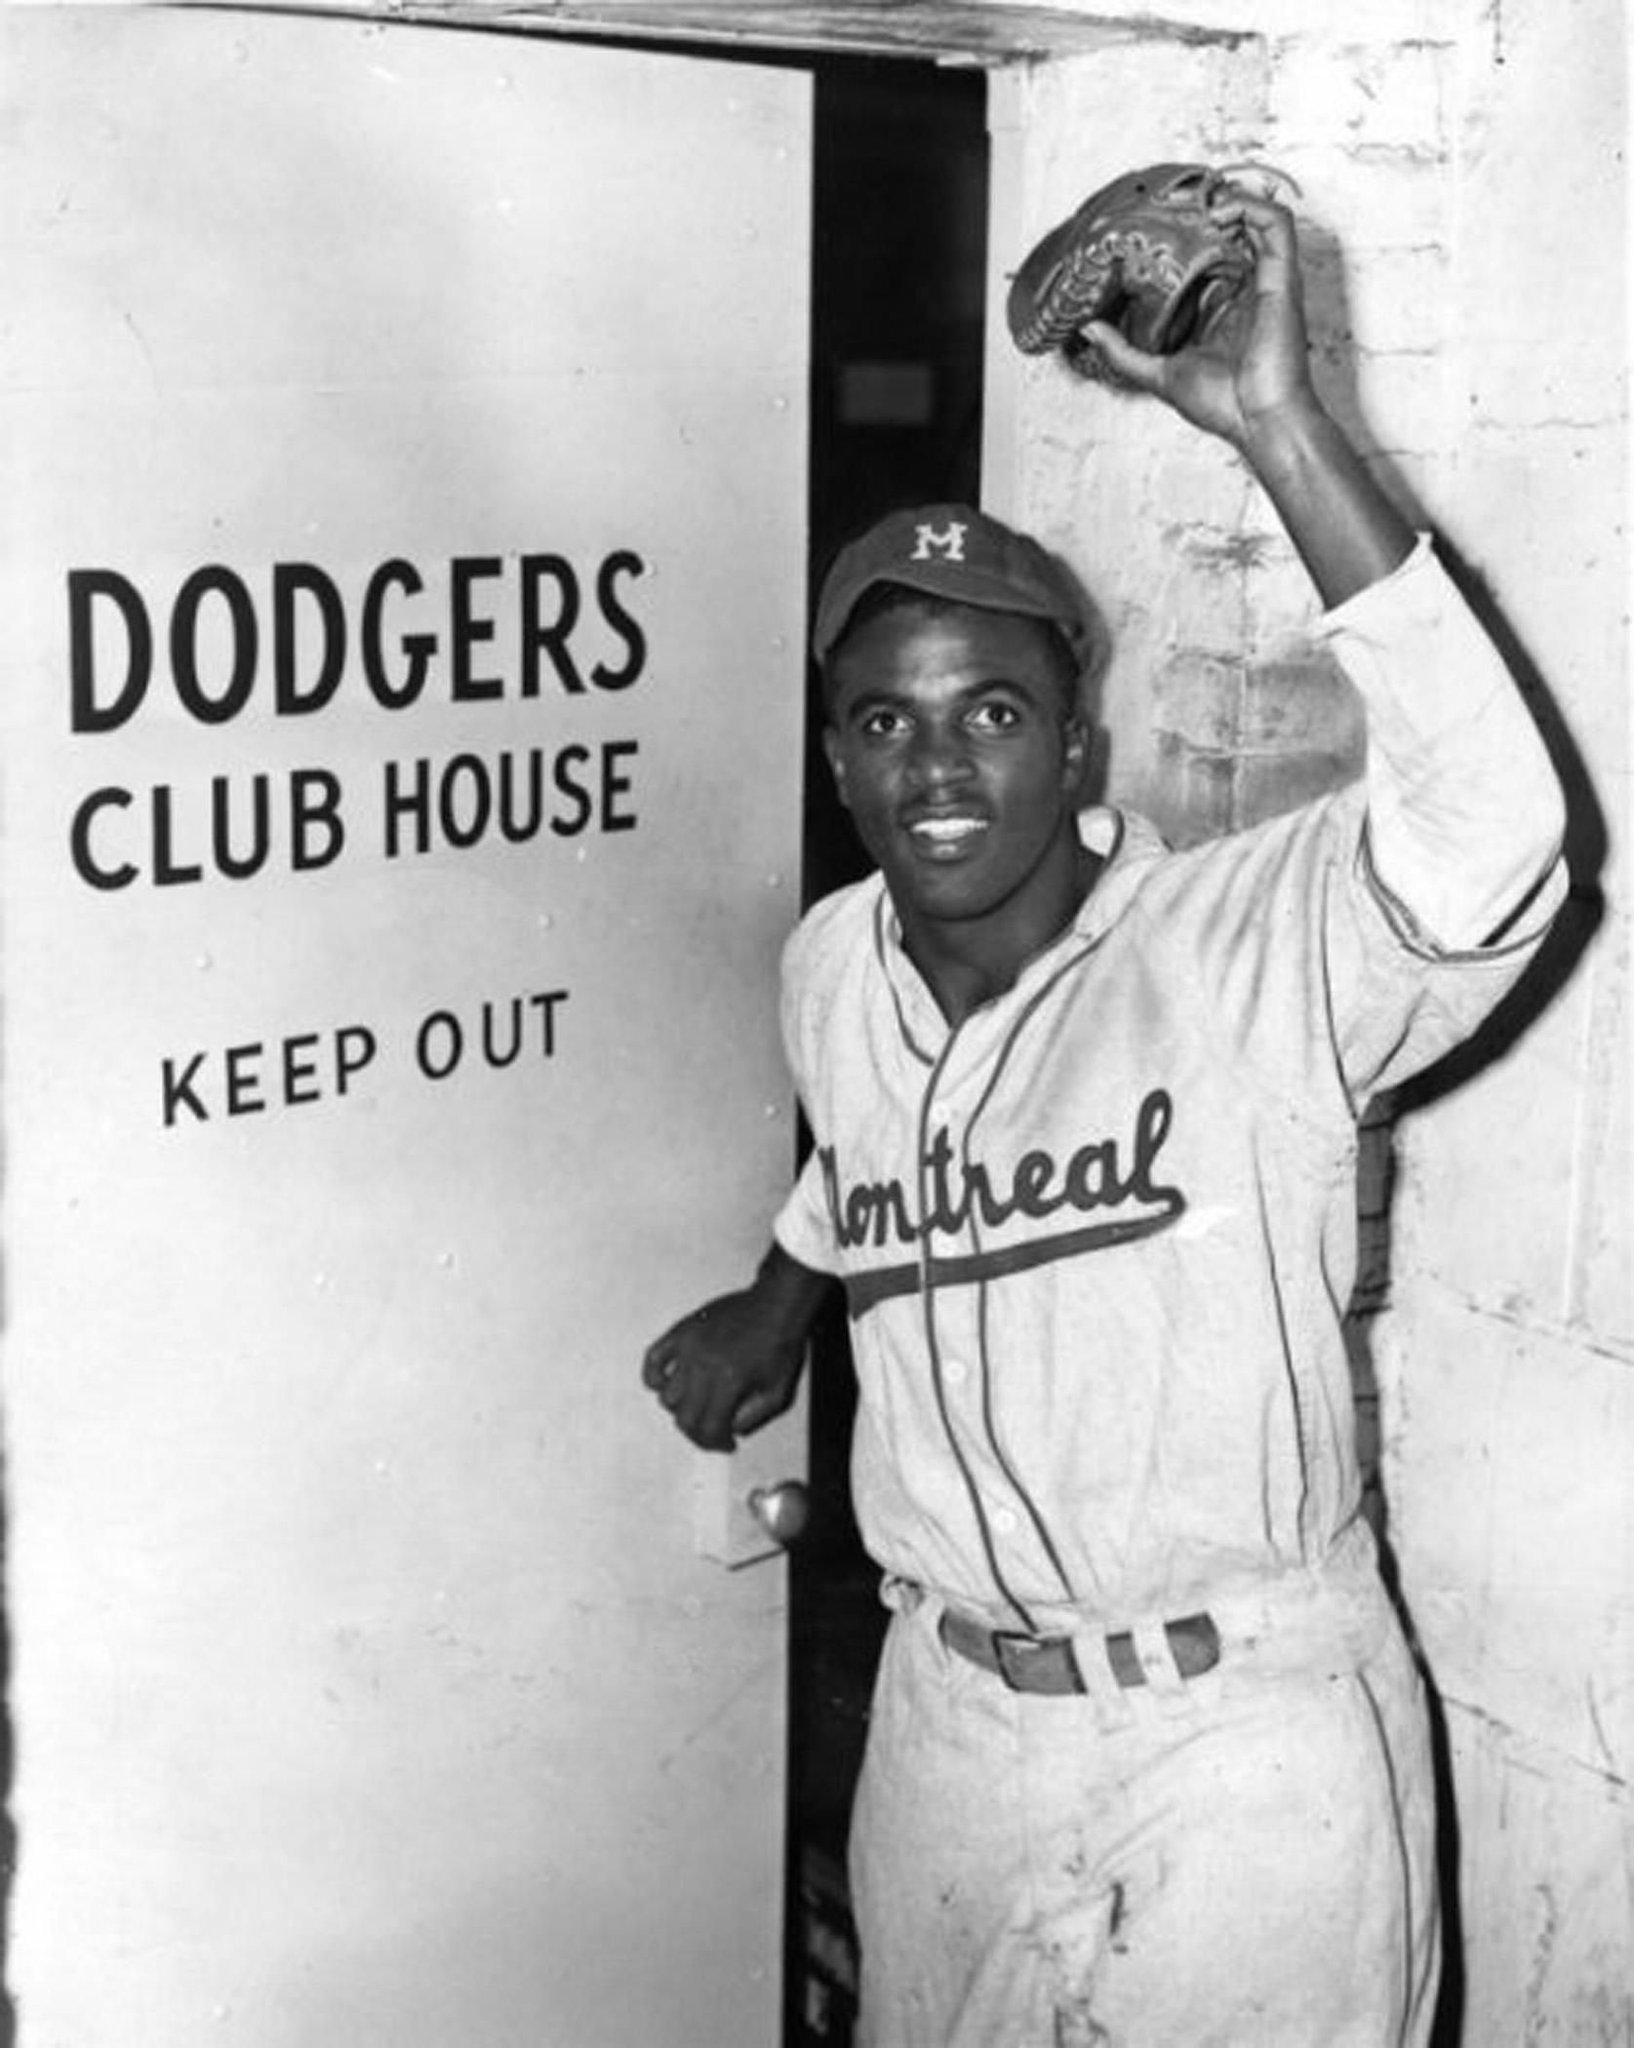 #OTD in 1947 at Ebbets Field during an exhibition game between Dodgers and their farm team the Montreal Royals, GM Branch Rickey issues statement that the club has bought the contract of Jackie Robinson from Royals. Here, Jackie enters clubhouse for 1st time as a Dodger @nlbmprez https://t.co/ZR7kLrFqd5